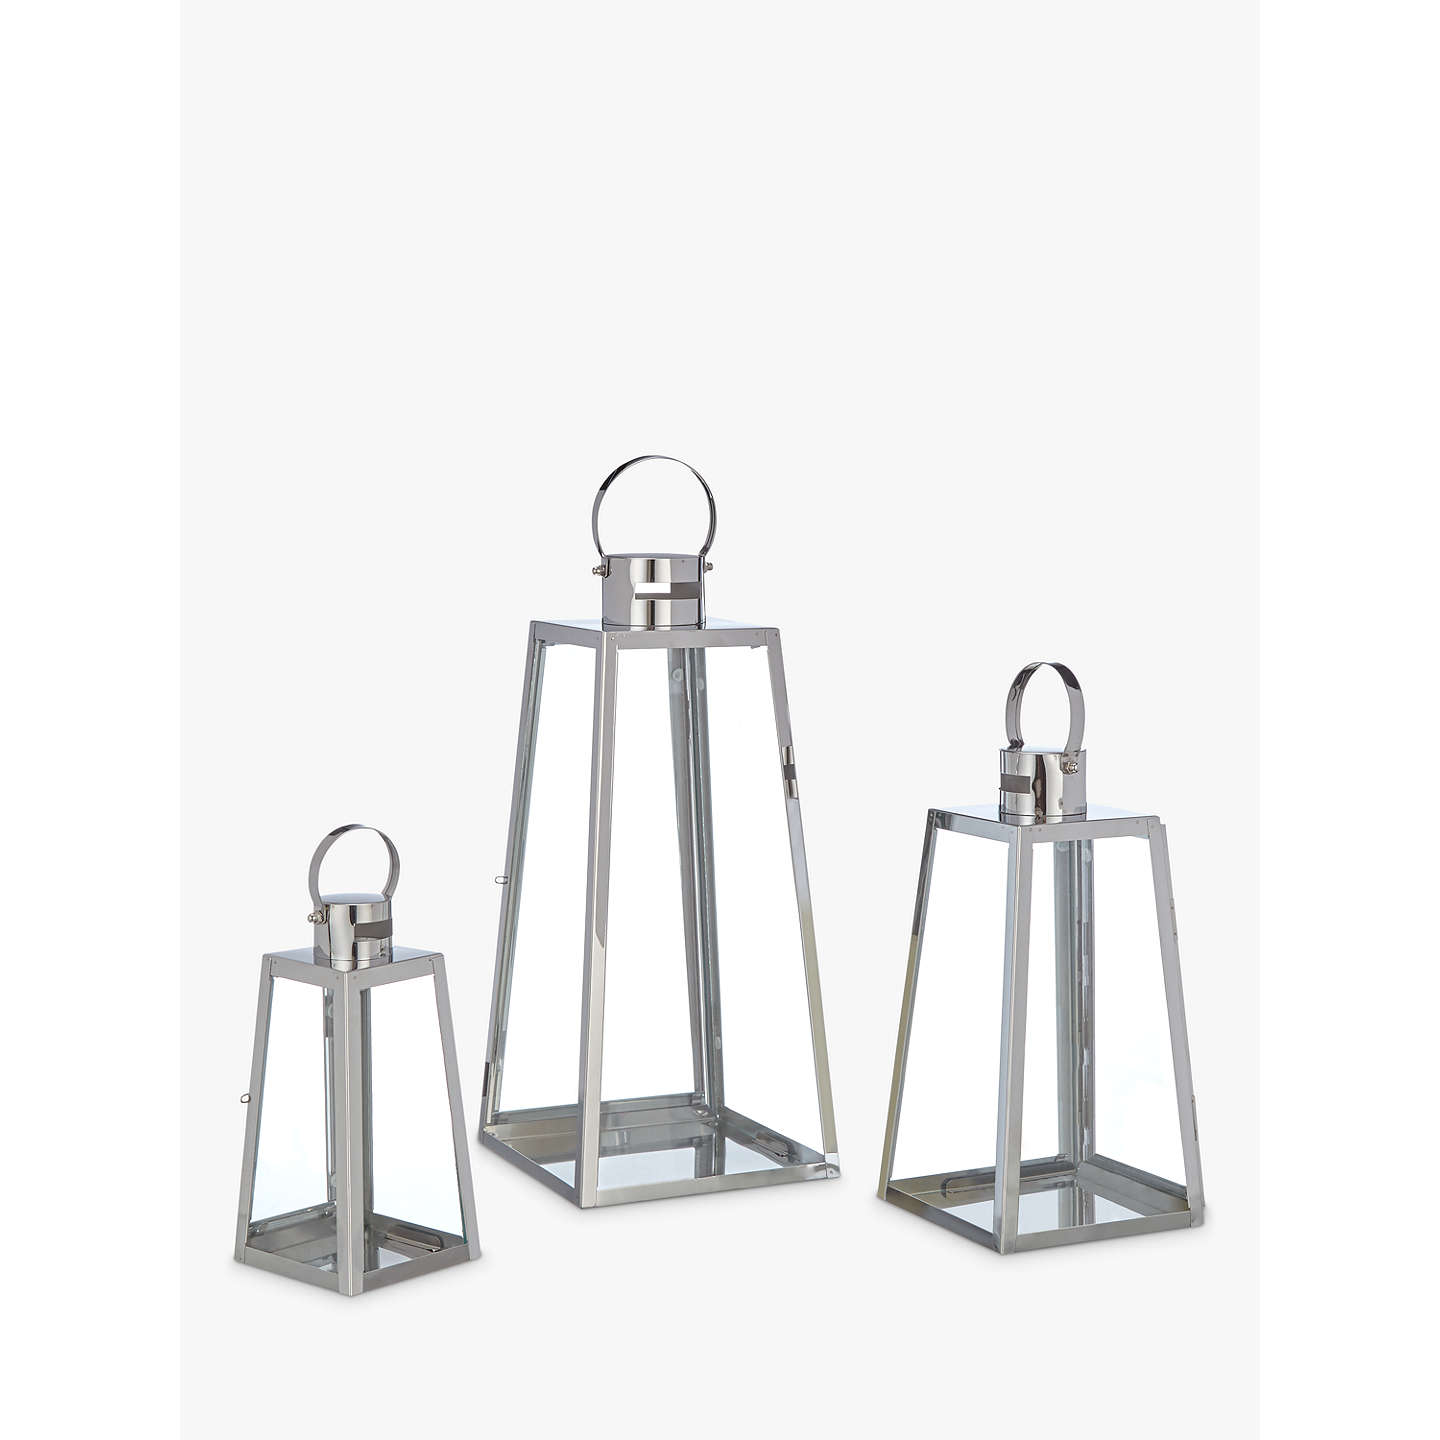 BuyJohn Lewis Pimlico Aluminium Lanterns, Set of 3 Online at johnlewis.com